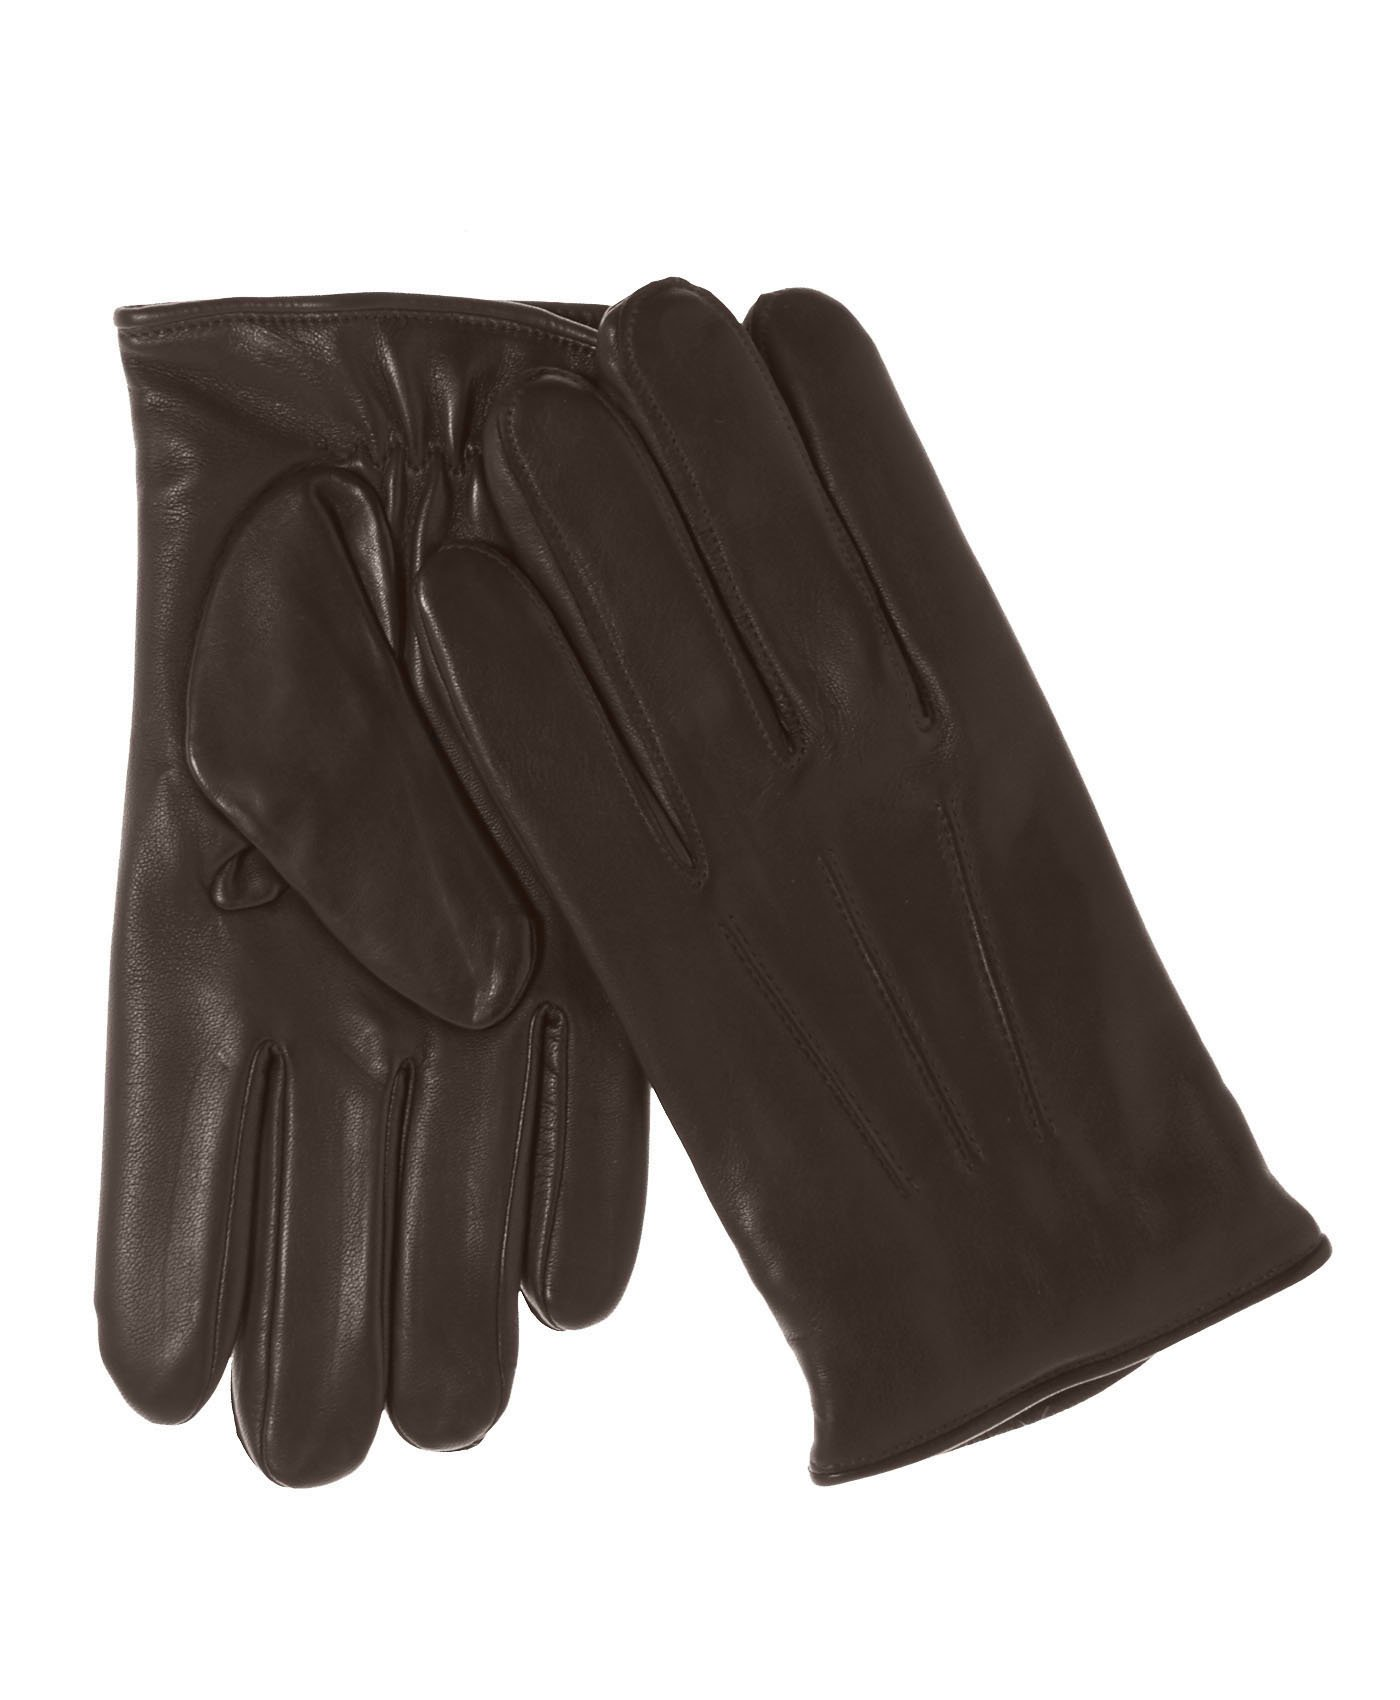 Fratelli Orsini Everyday Men's Italian Lambskin Cashmere Lined Winter Leather Gloves Size L Color Brown